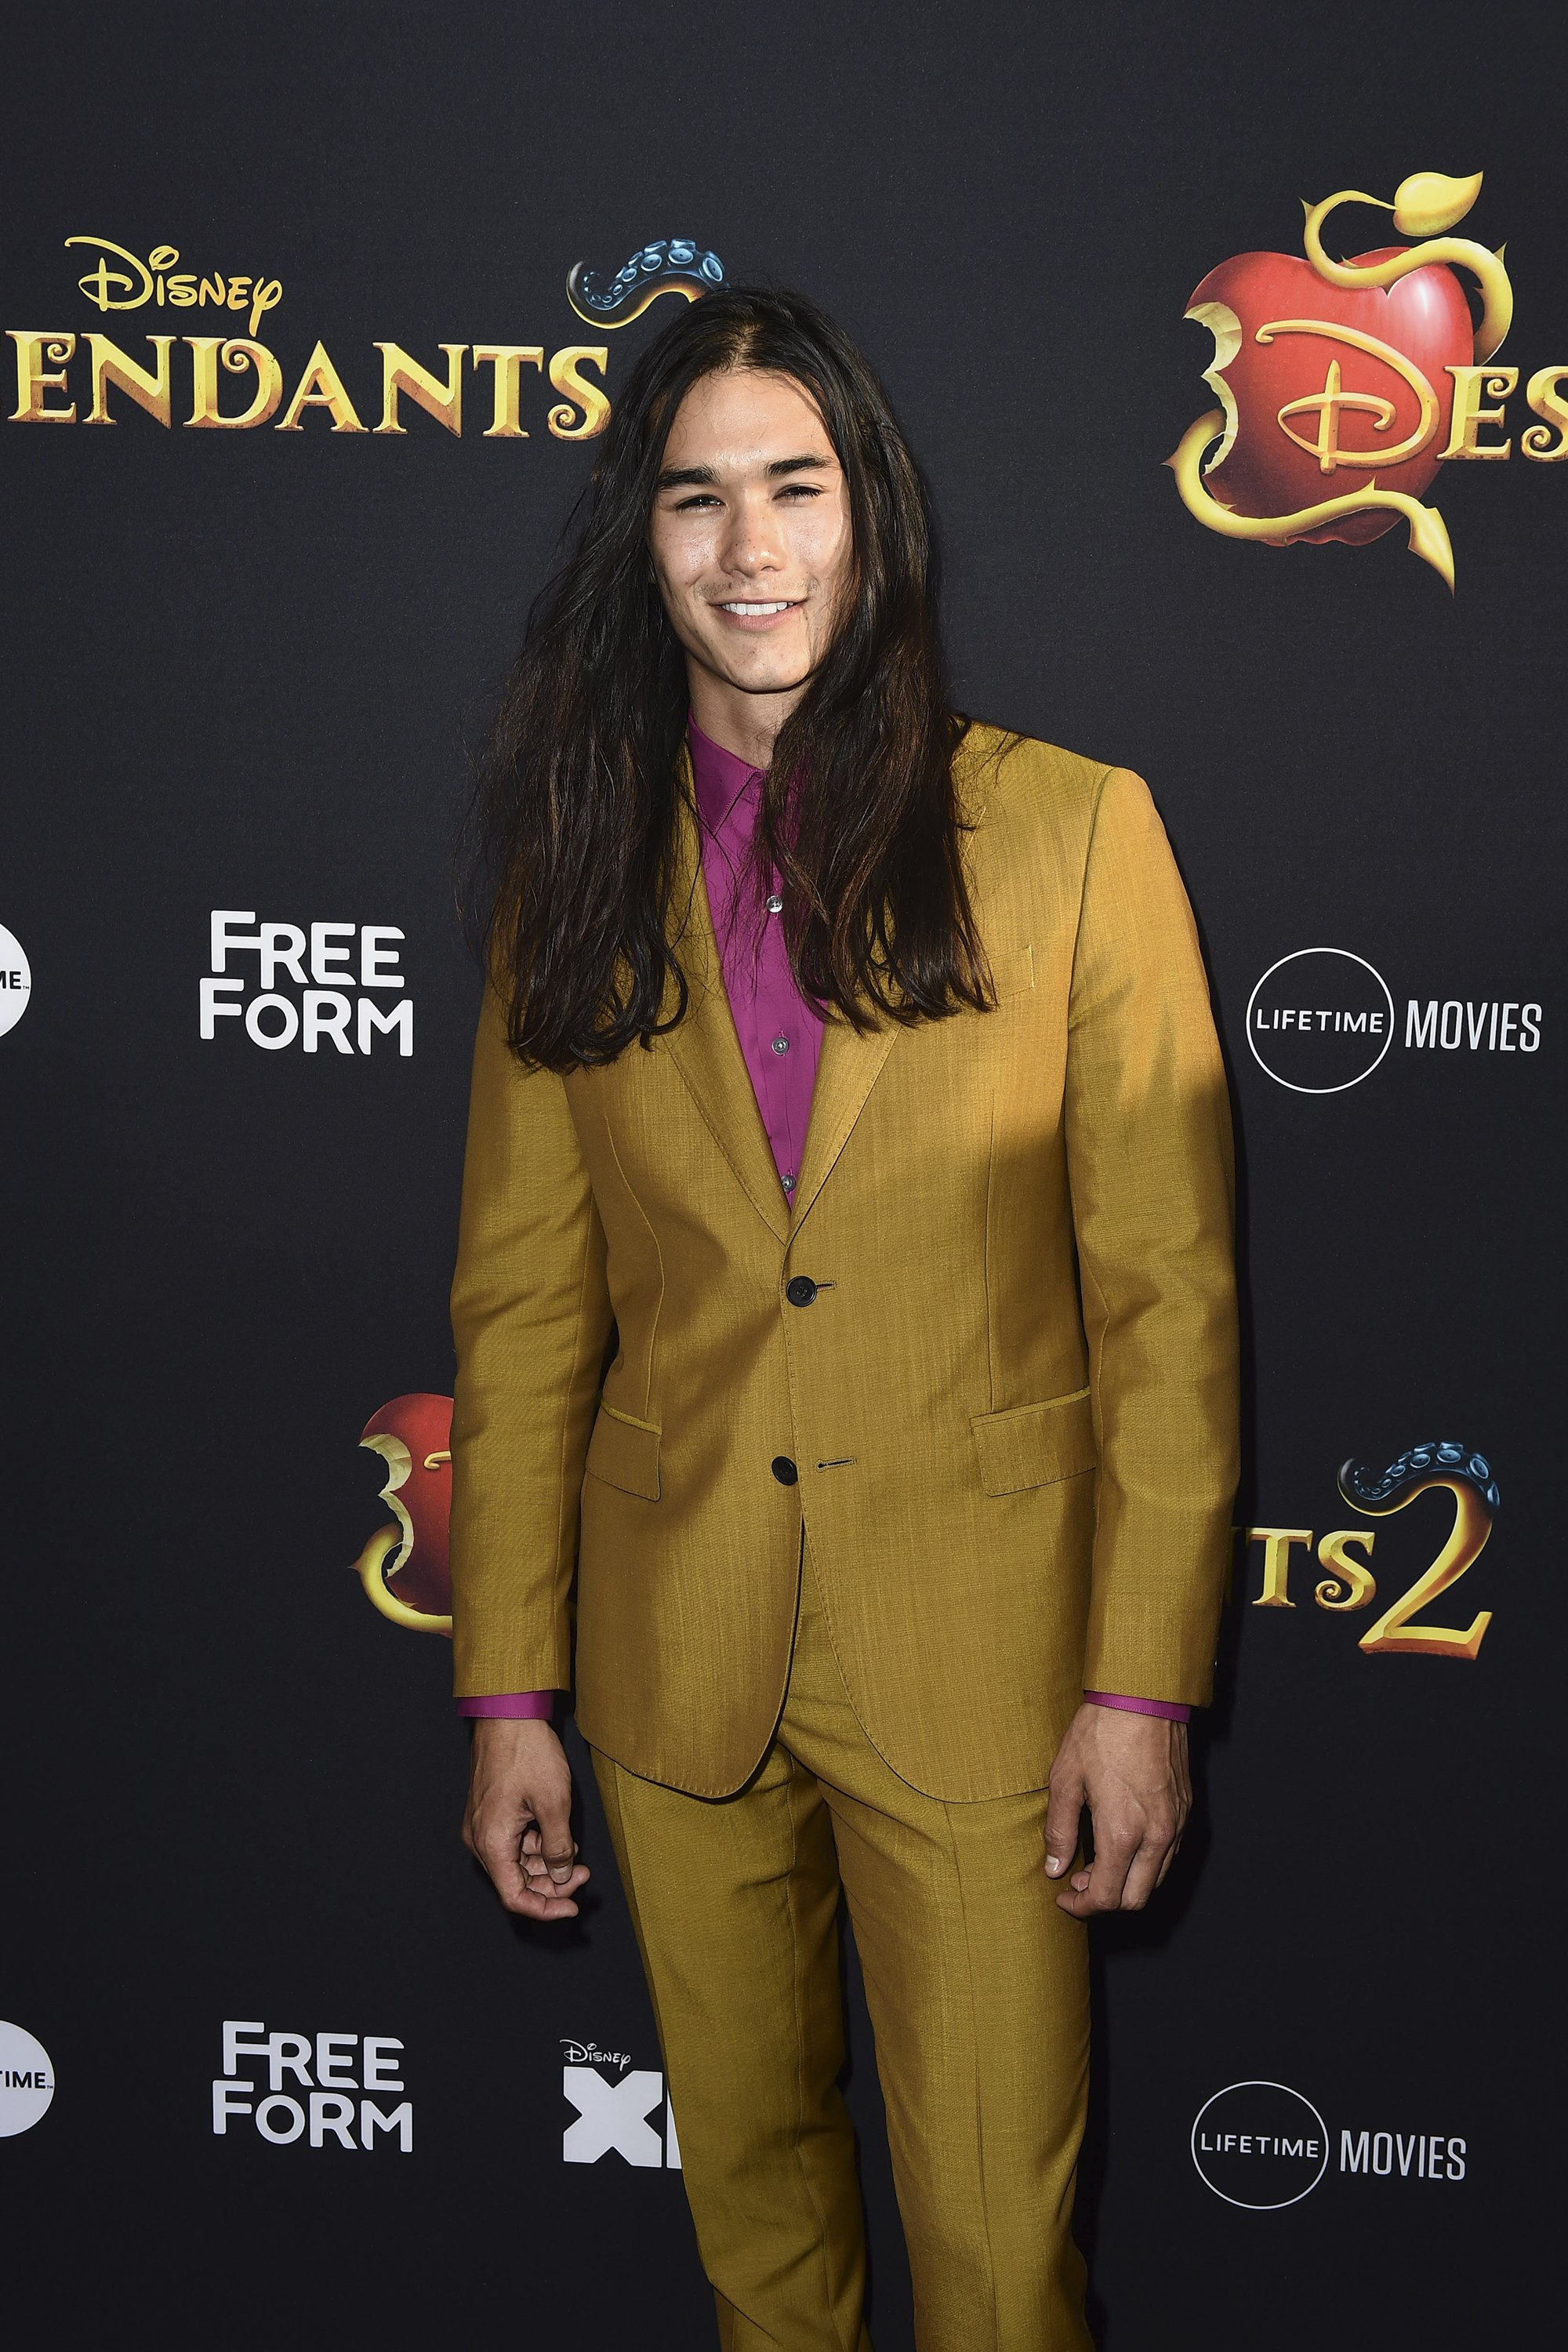 Booboo Stewart at the premiere of Descendants 2 / CC BY-ND 2.0 / Walt Disney Television / flickr